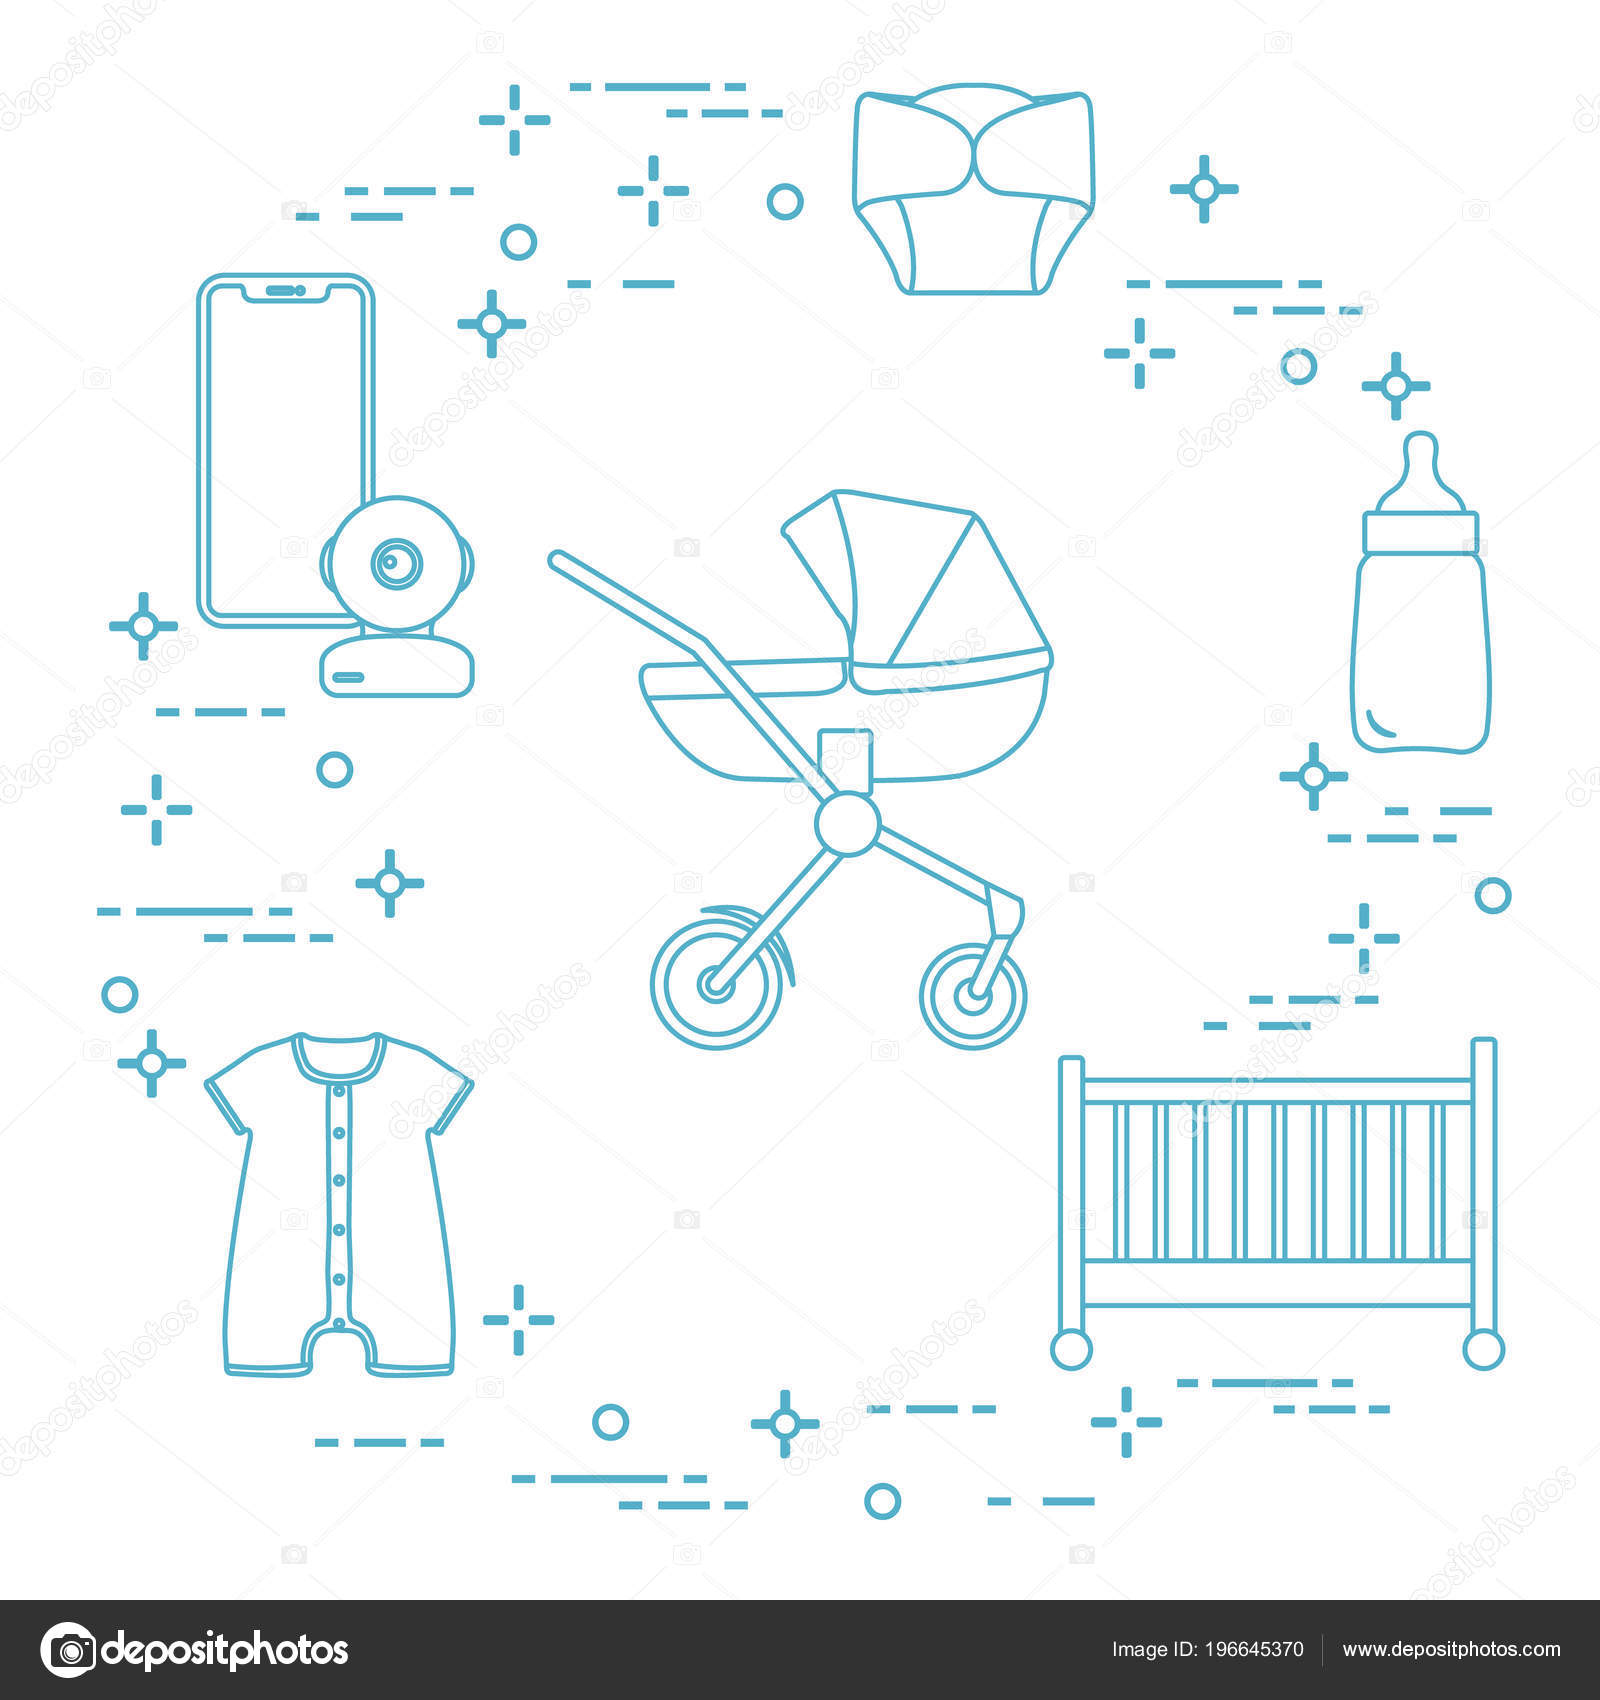 b32a1e1e116 Goods Babies Stroller Crib Baby Monitor Bottle Waterproof Panties Overalls  — Stock Vector